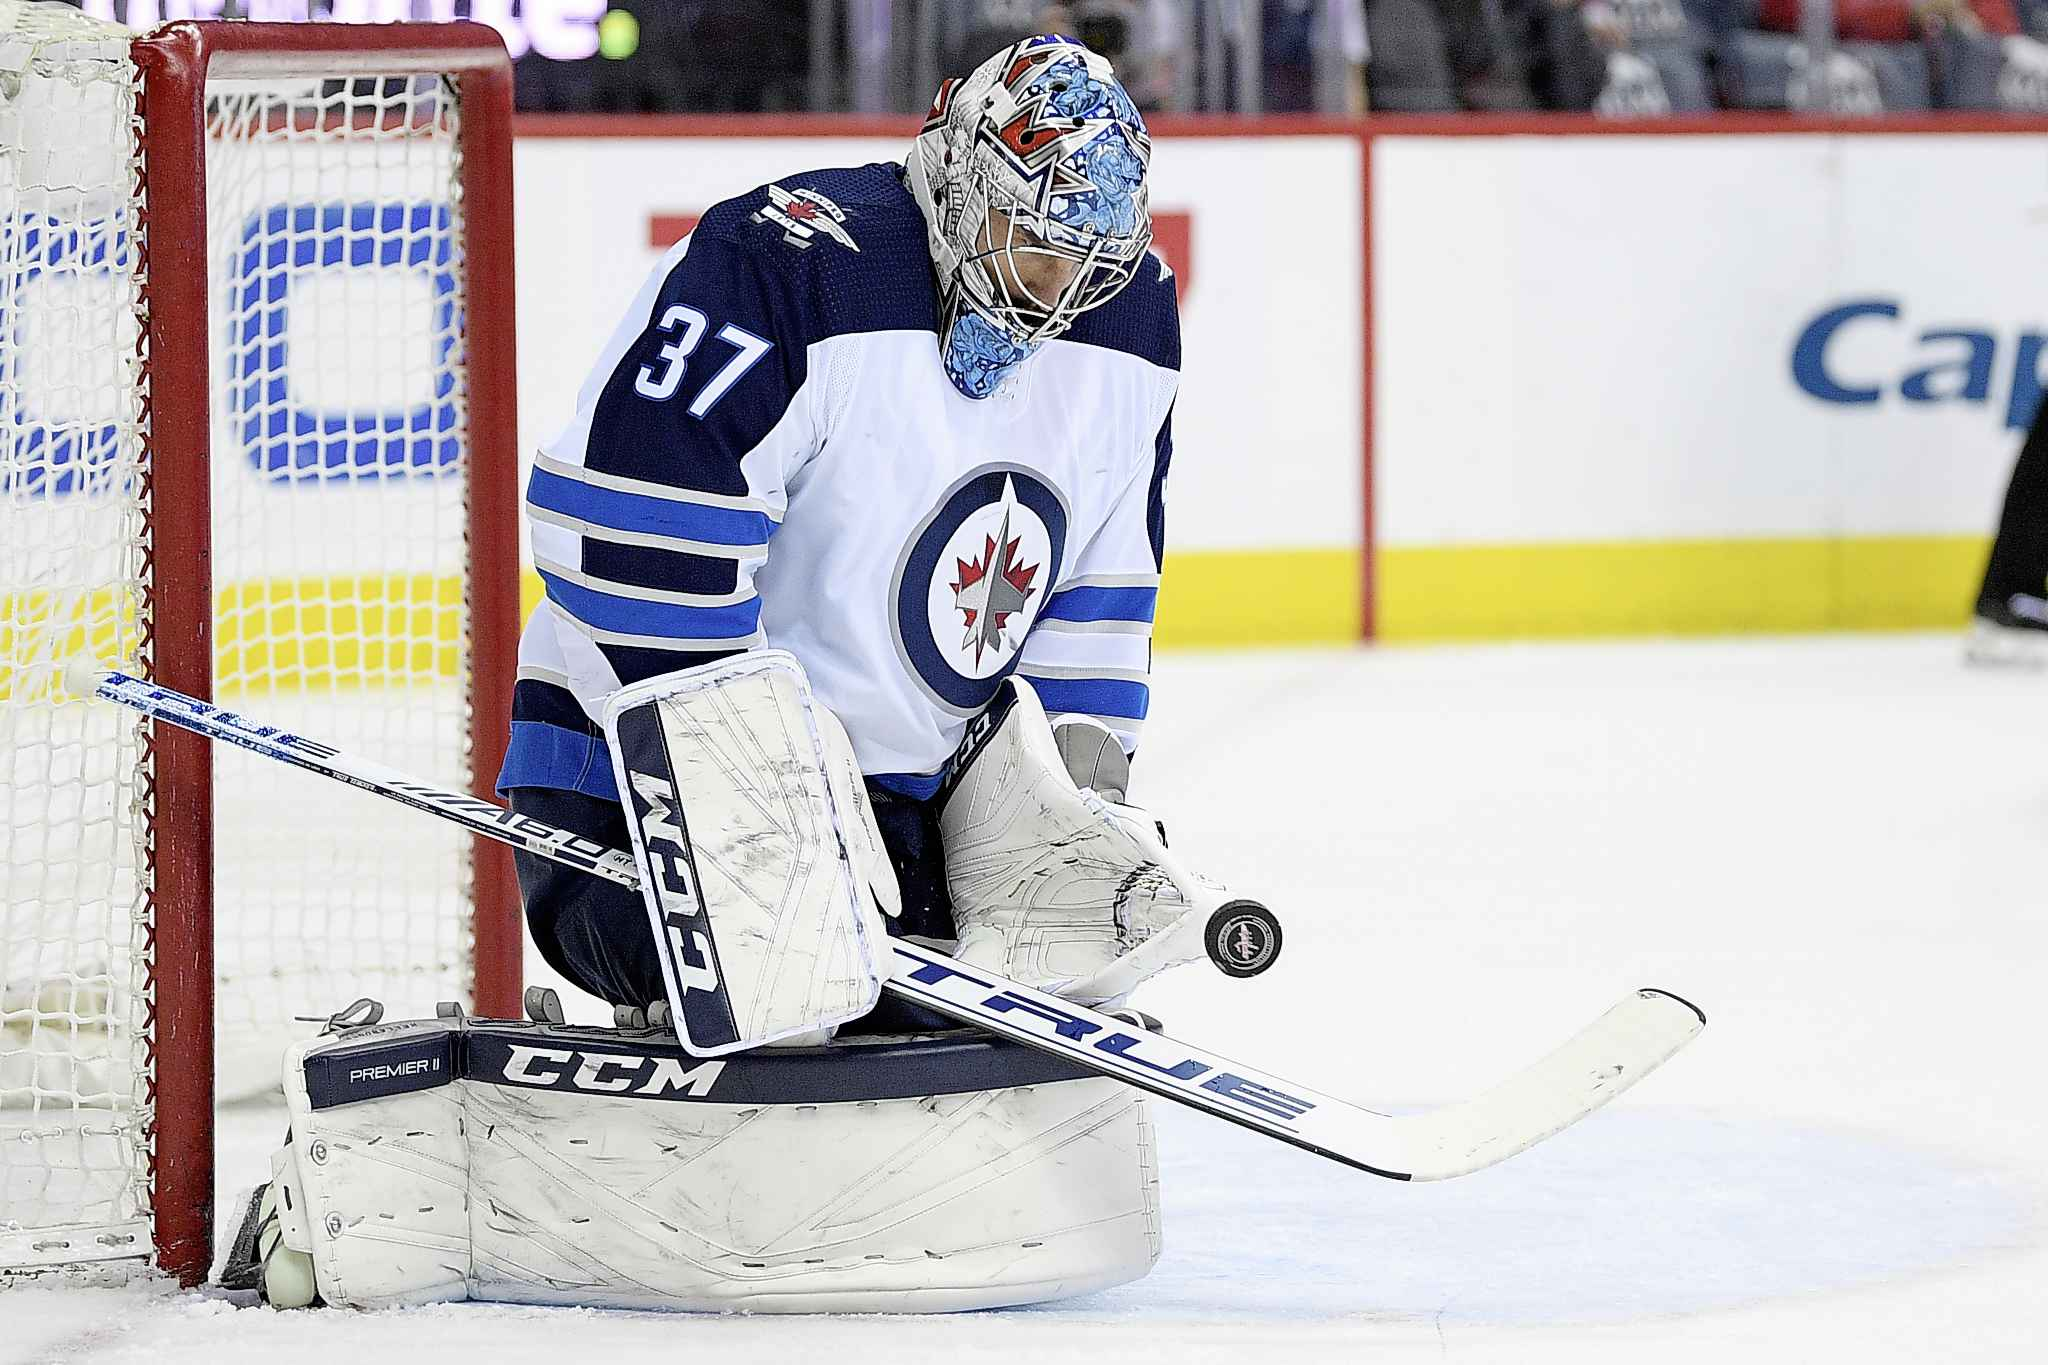 NICK WASS / THE ASSOCIATED PRESS</p><p>Winnipeg Jets goaltender Connor Hellebuyck (37) stops the puck during the first period of an NHL hockey game against the Washington Capitals, Sunday, March 10, 2019, in Washington.</p>